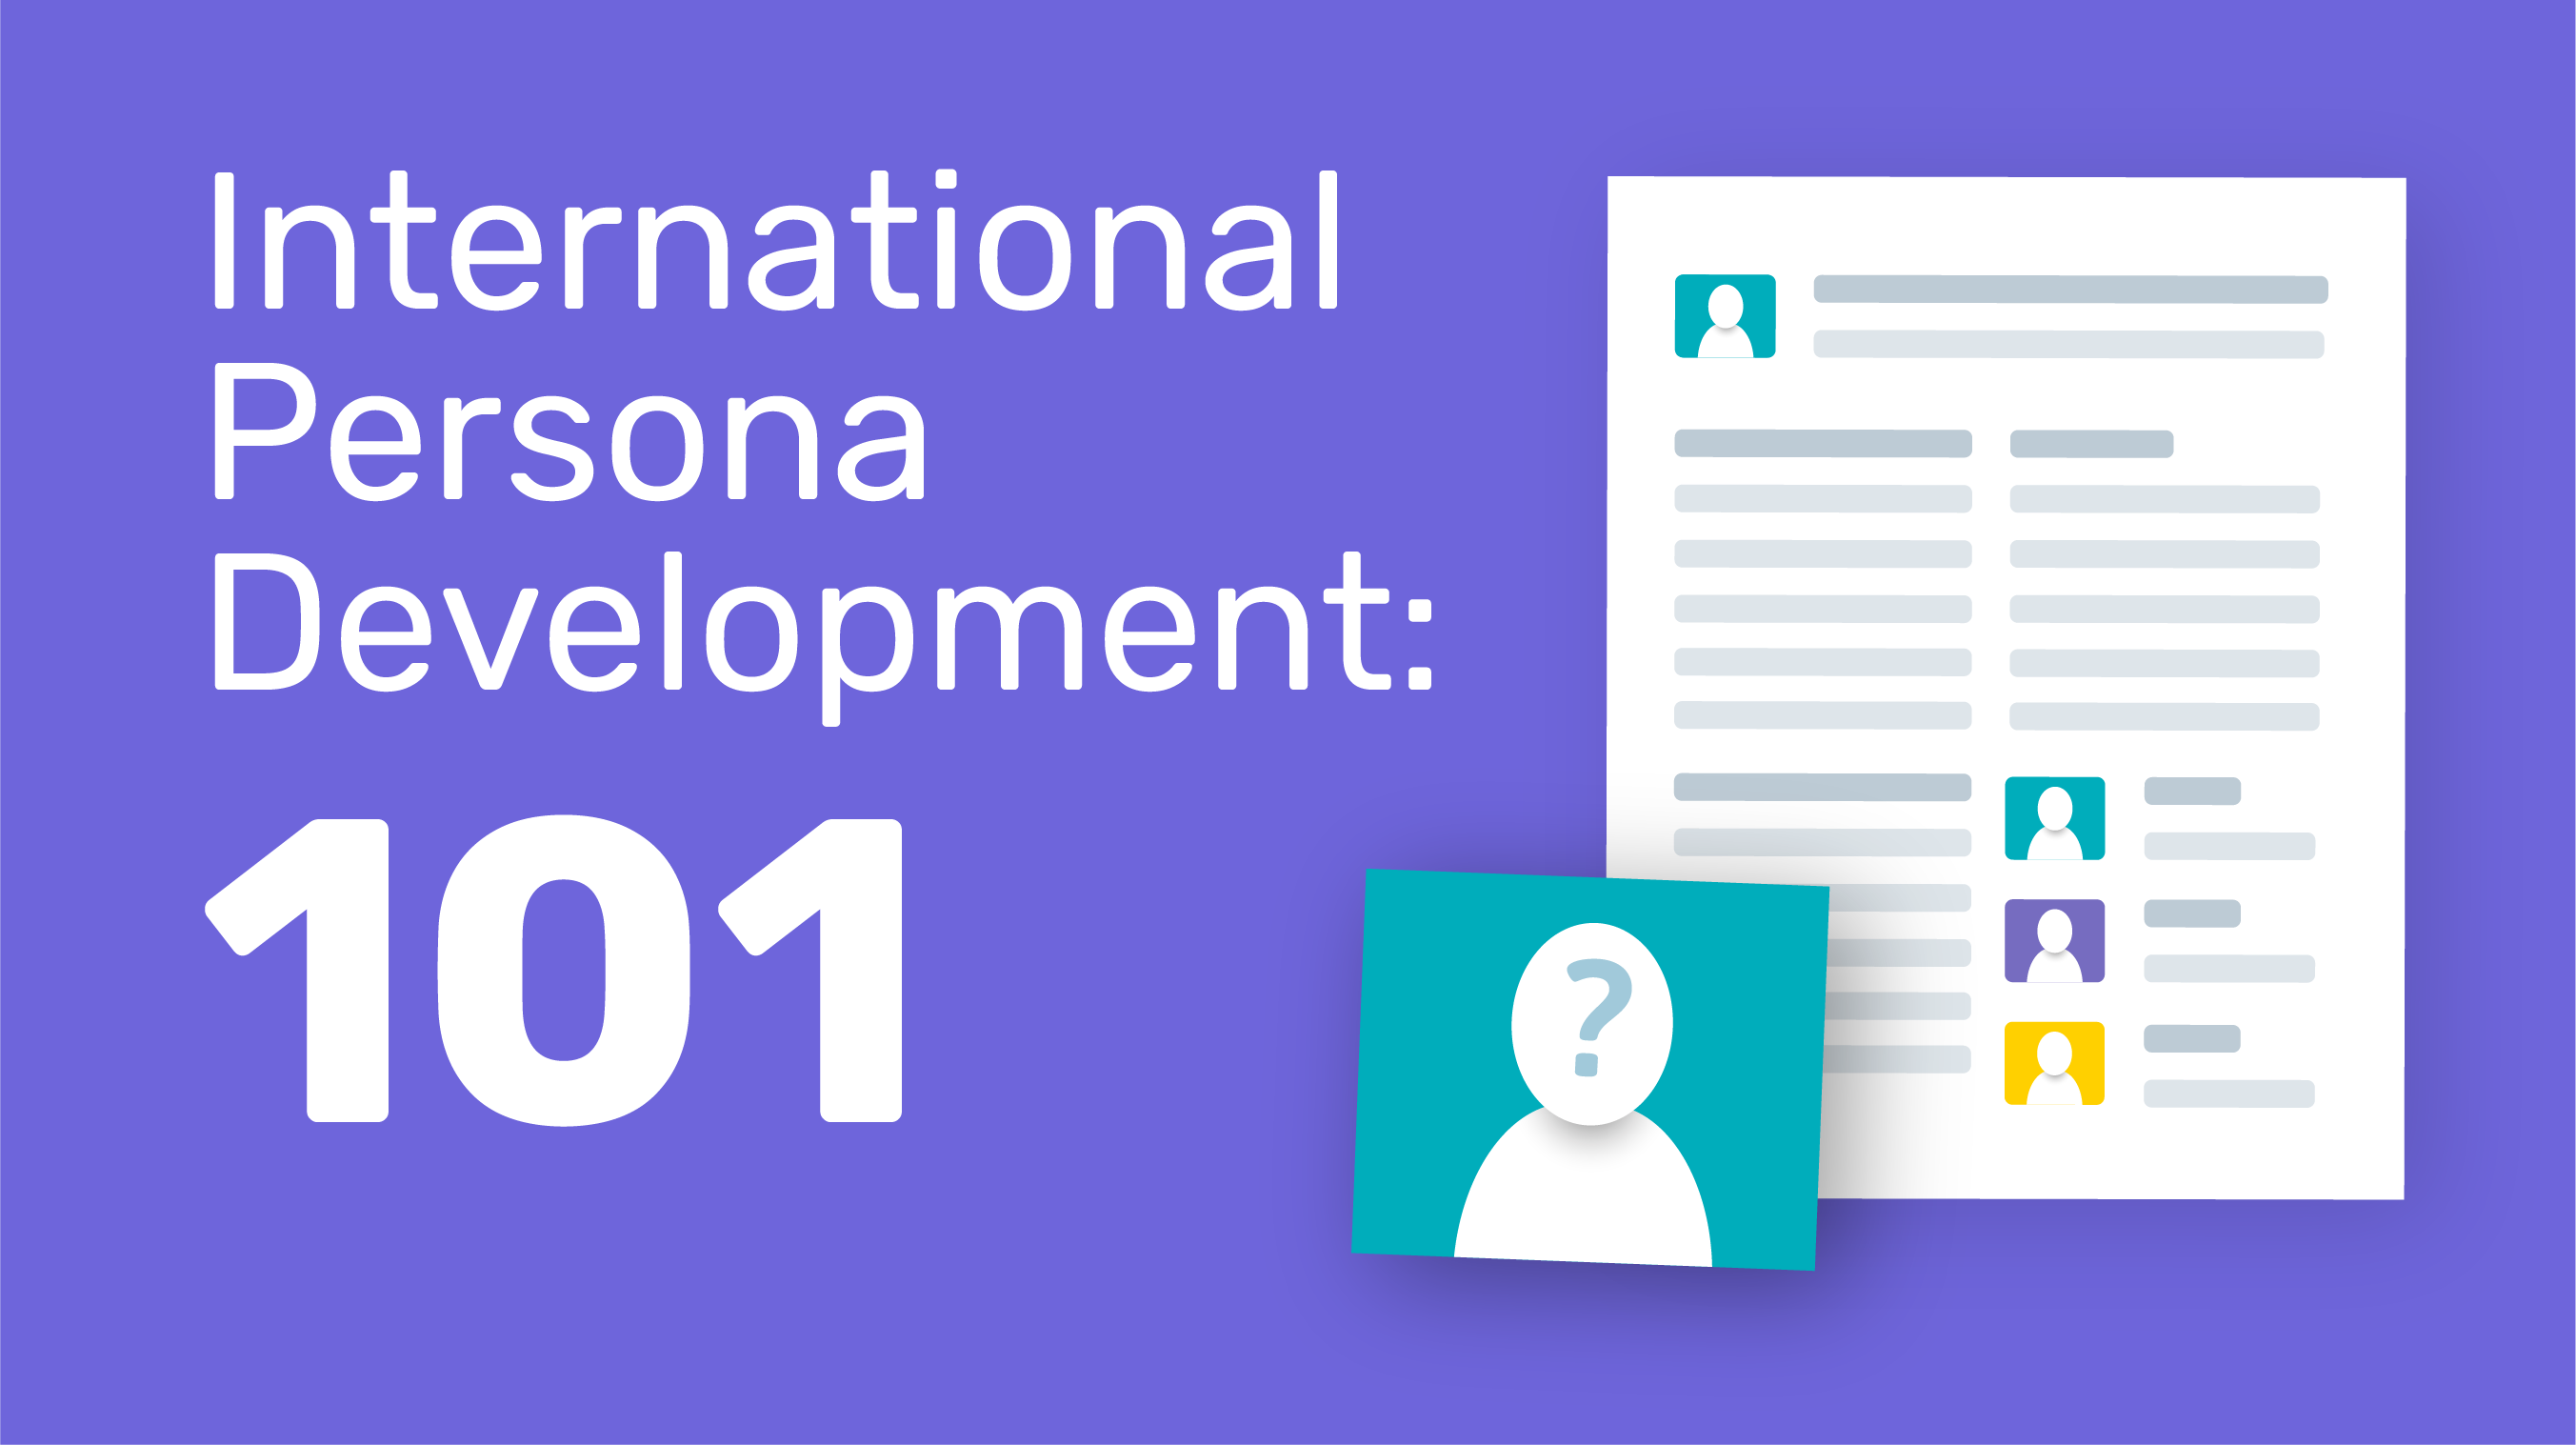 International Persona Development: 101